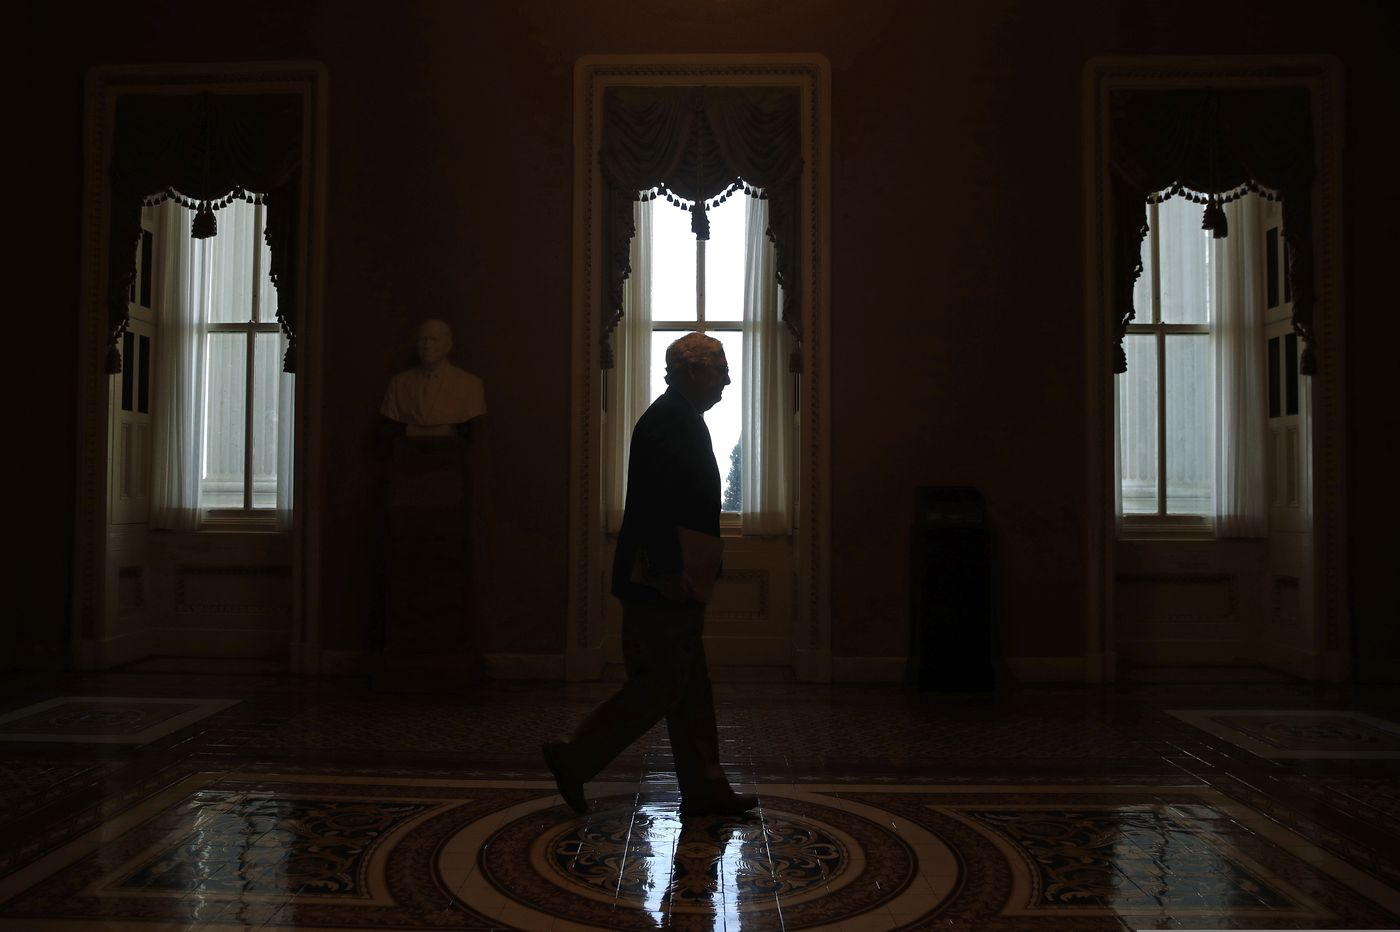 Long drives, no staff, and face masks: the Senate returns as most of D.C. remains in lockdown